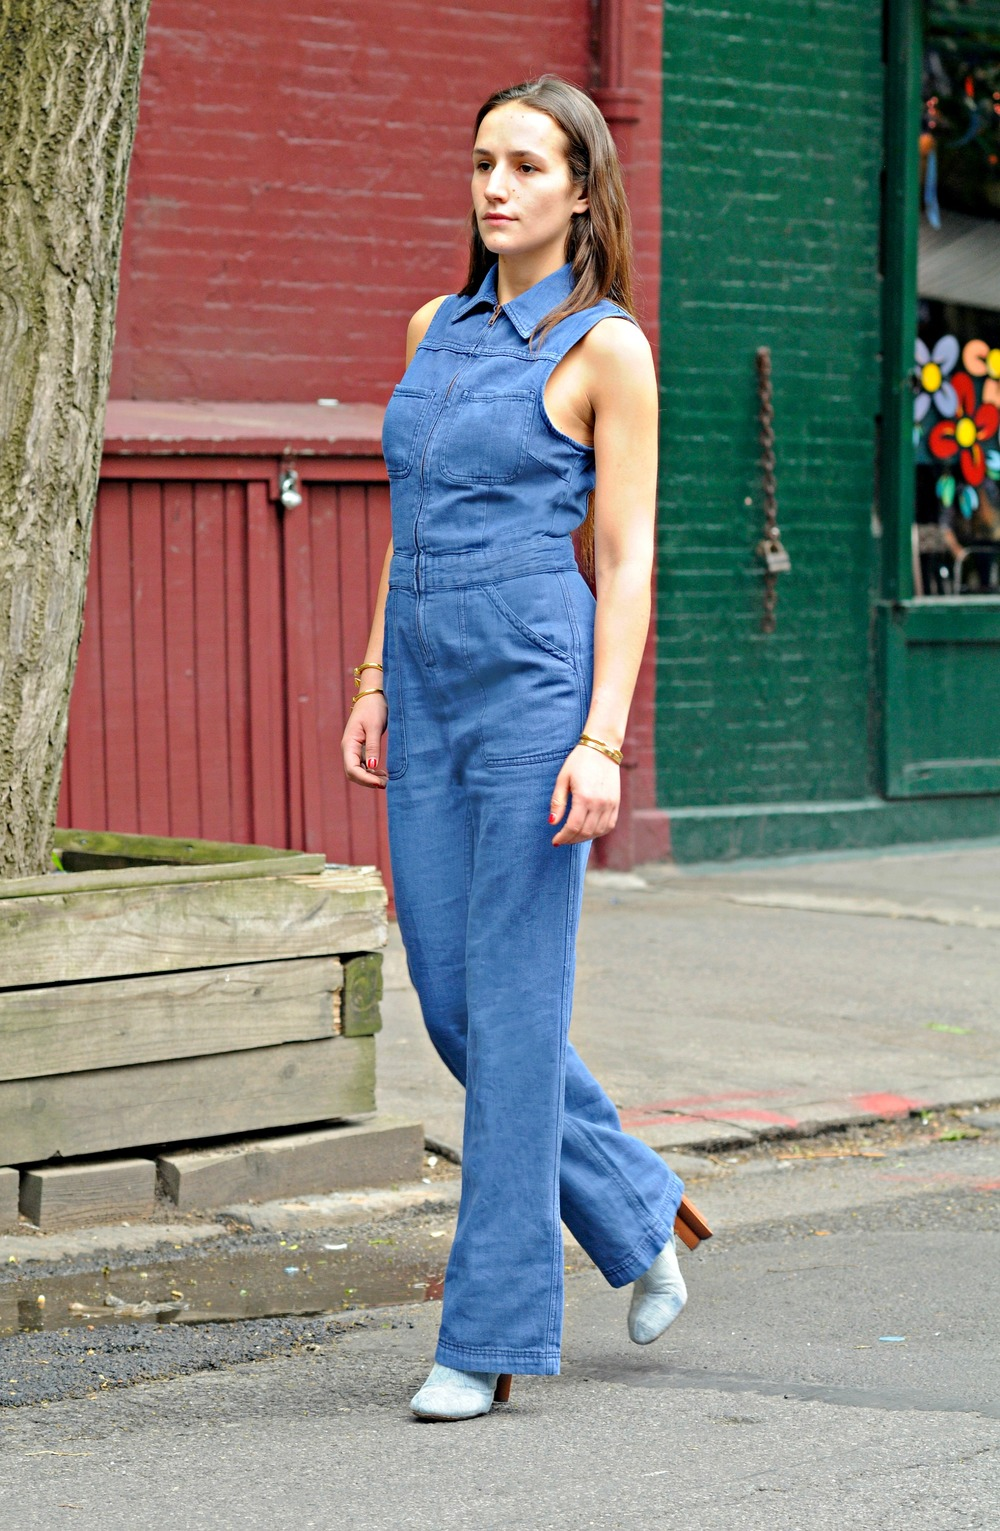 NYC FASHION BLOGGER SOPHIE BICKLEY FREE PEOPLE DENIM JUMPSUIT